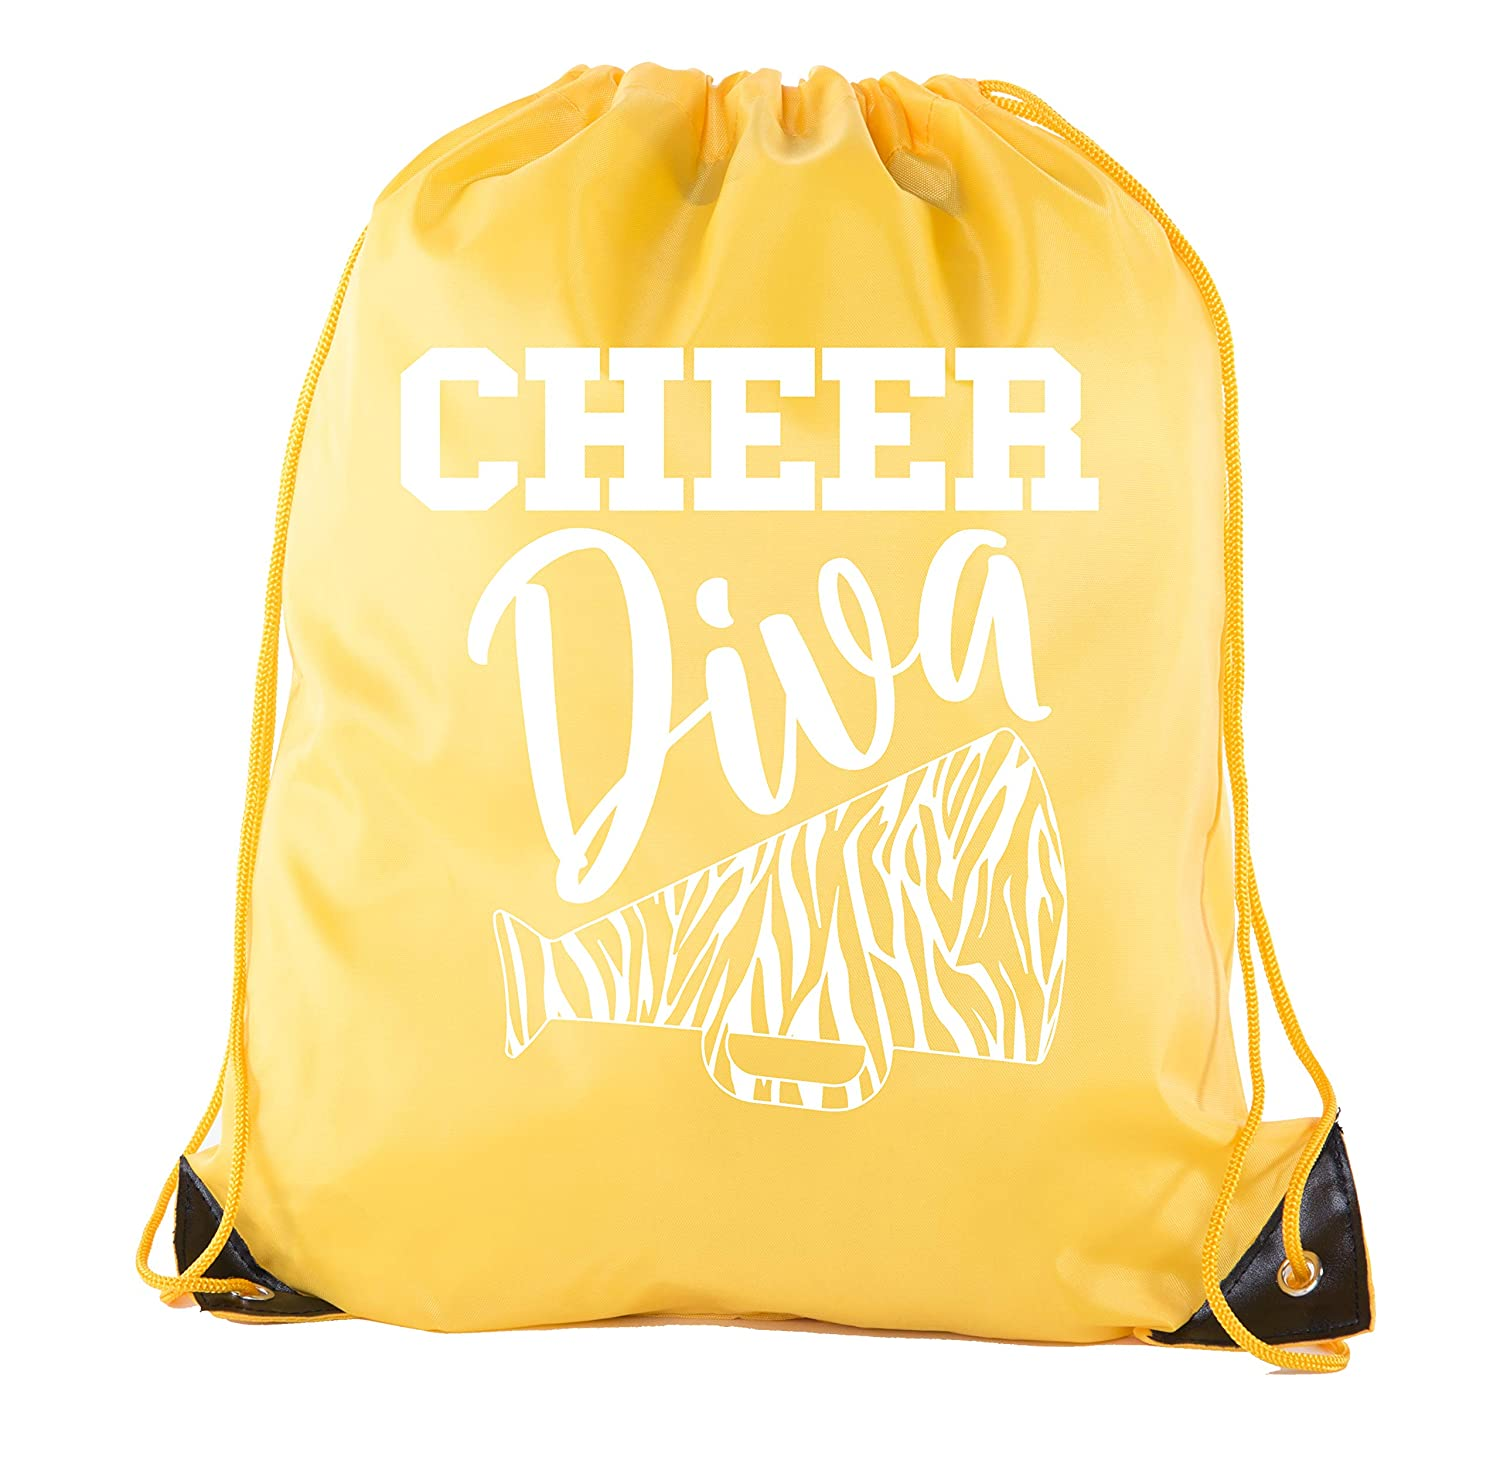 Amazon.com: Mochilas Cheer Bags, Pom Pom y Cheerleader con ...